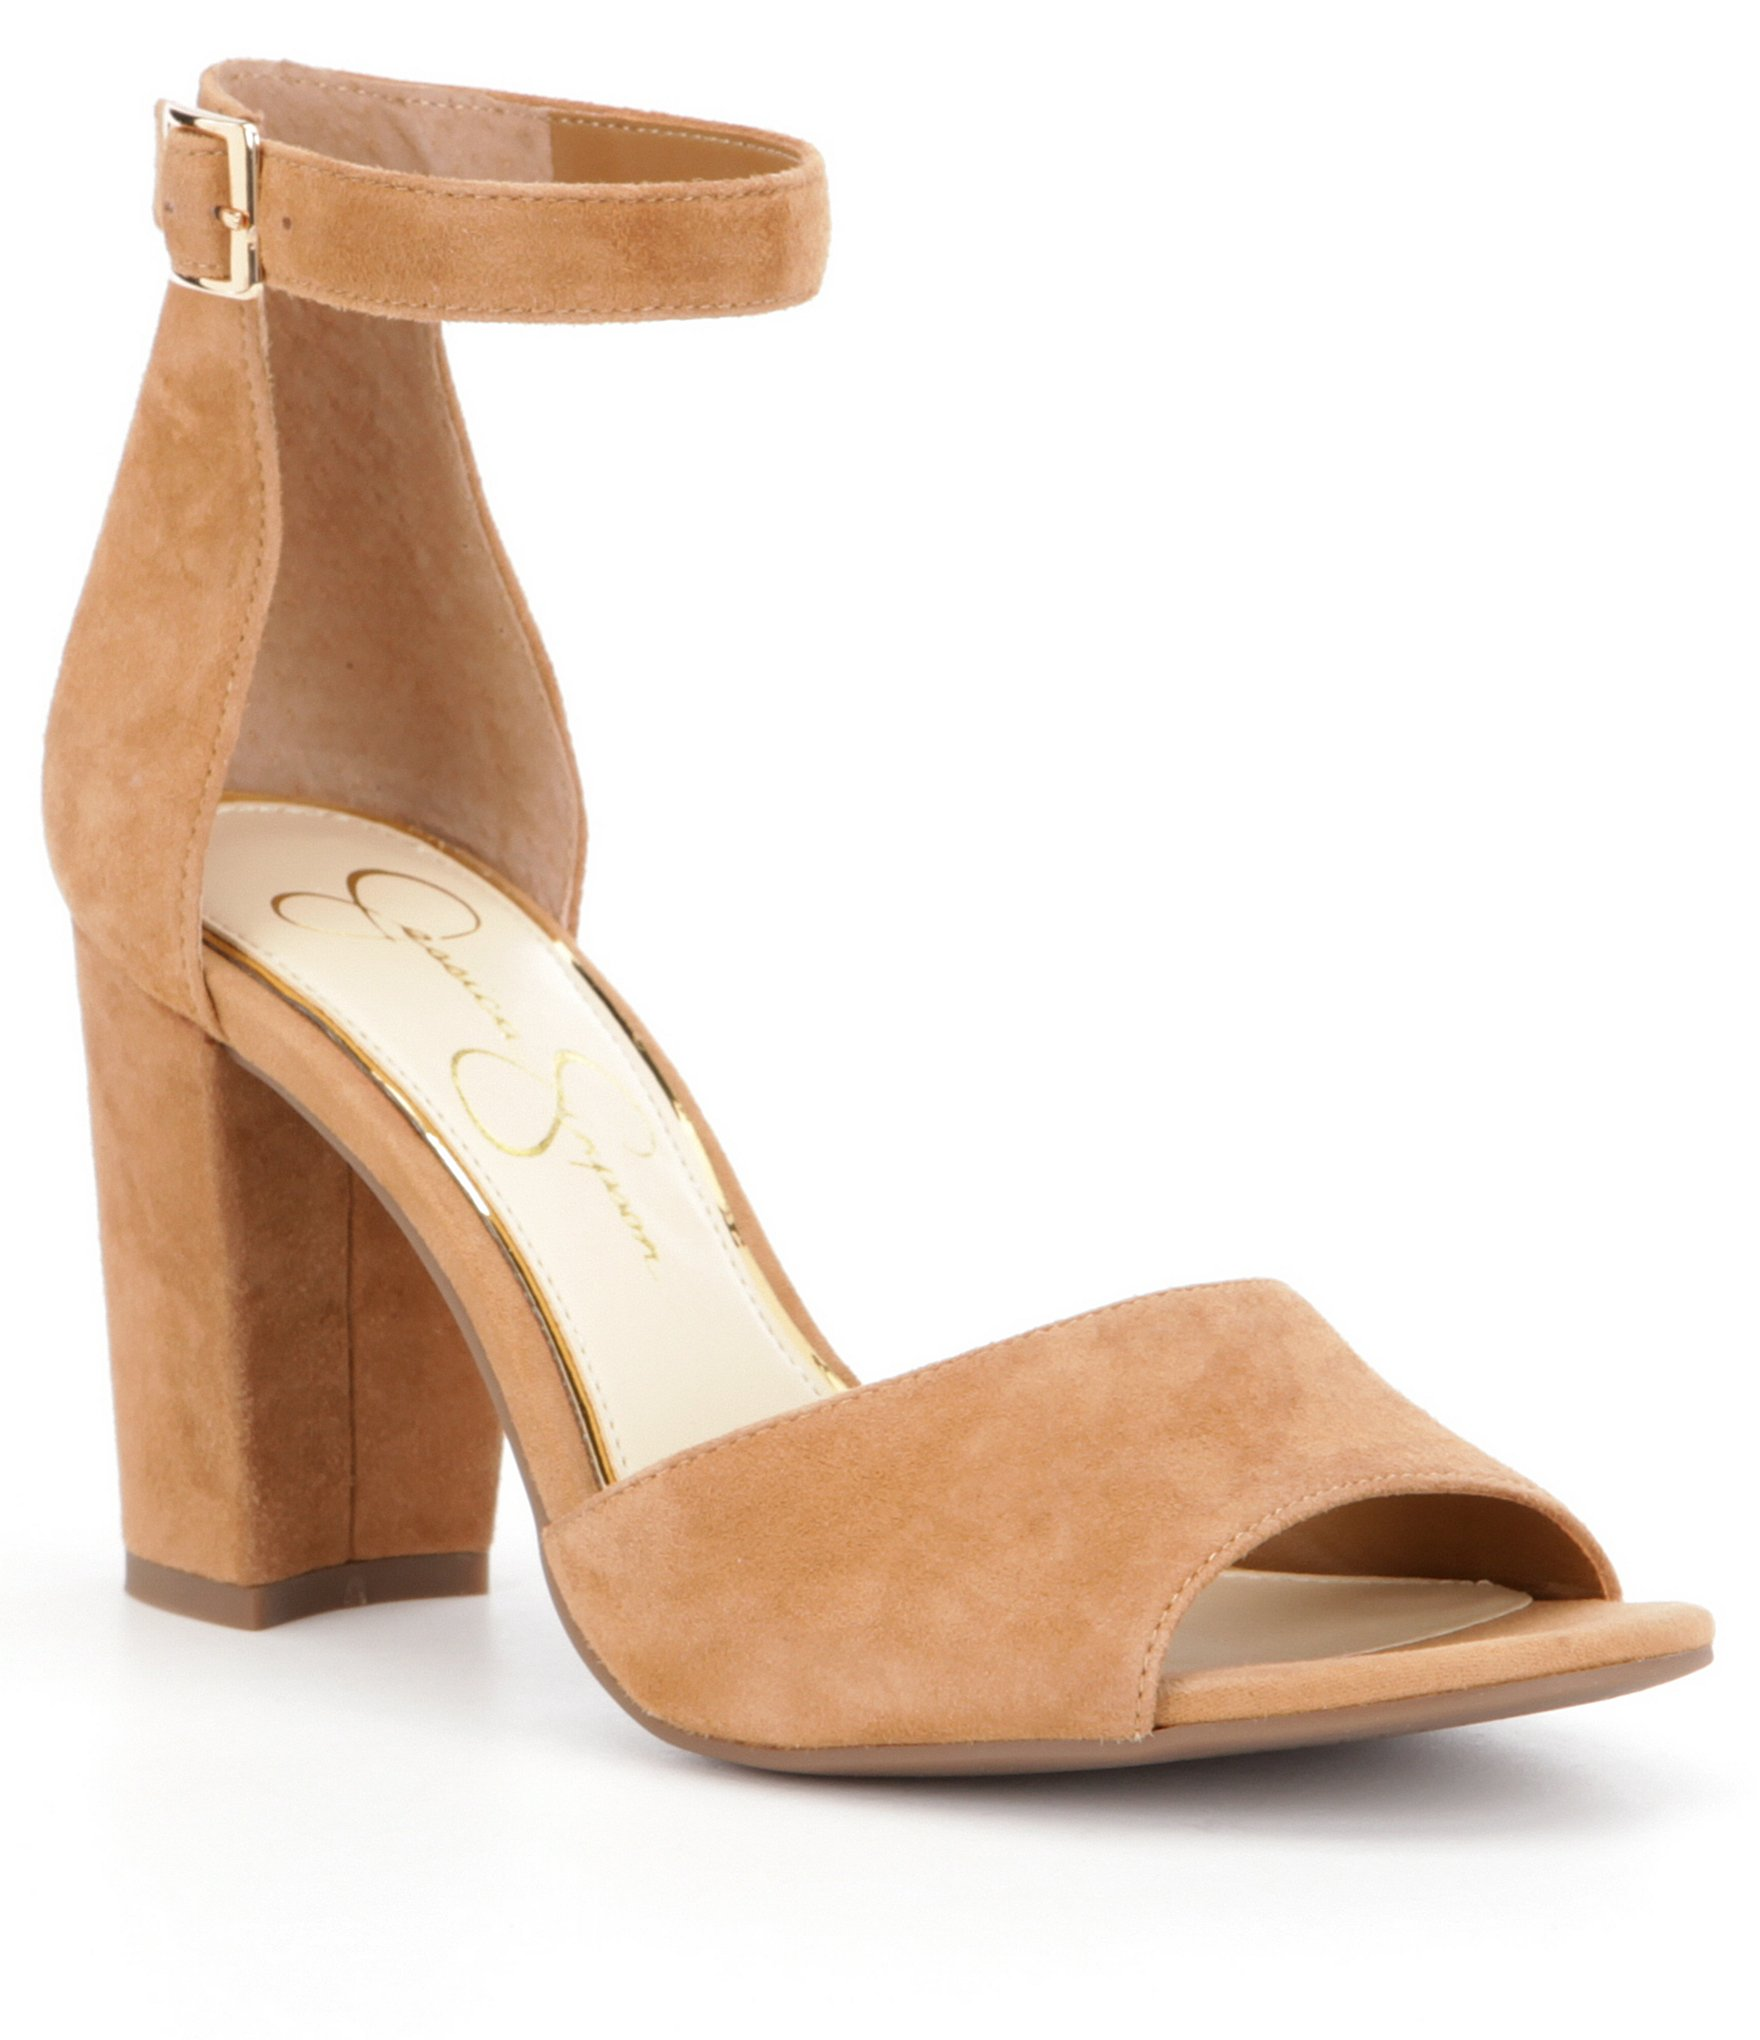 womenu0027s high heel sandals | dillards dfvxkhj